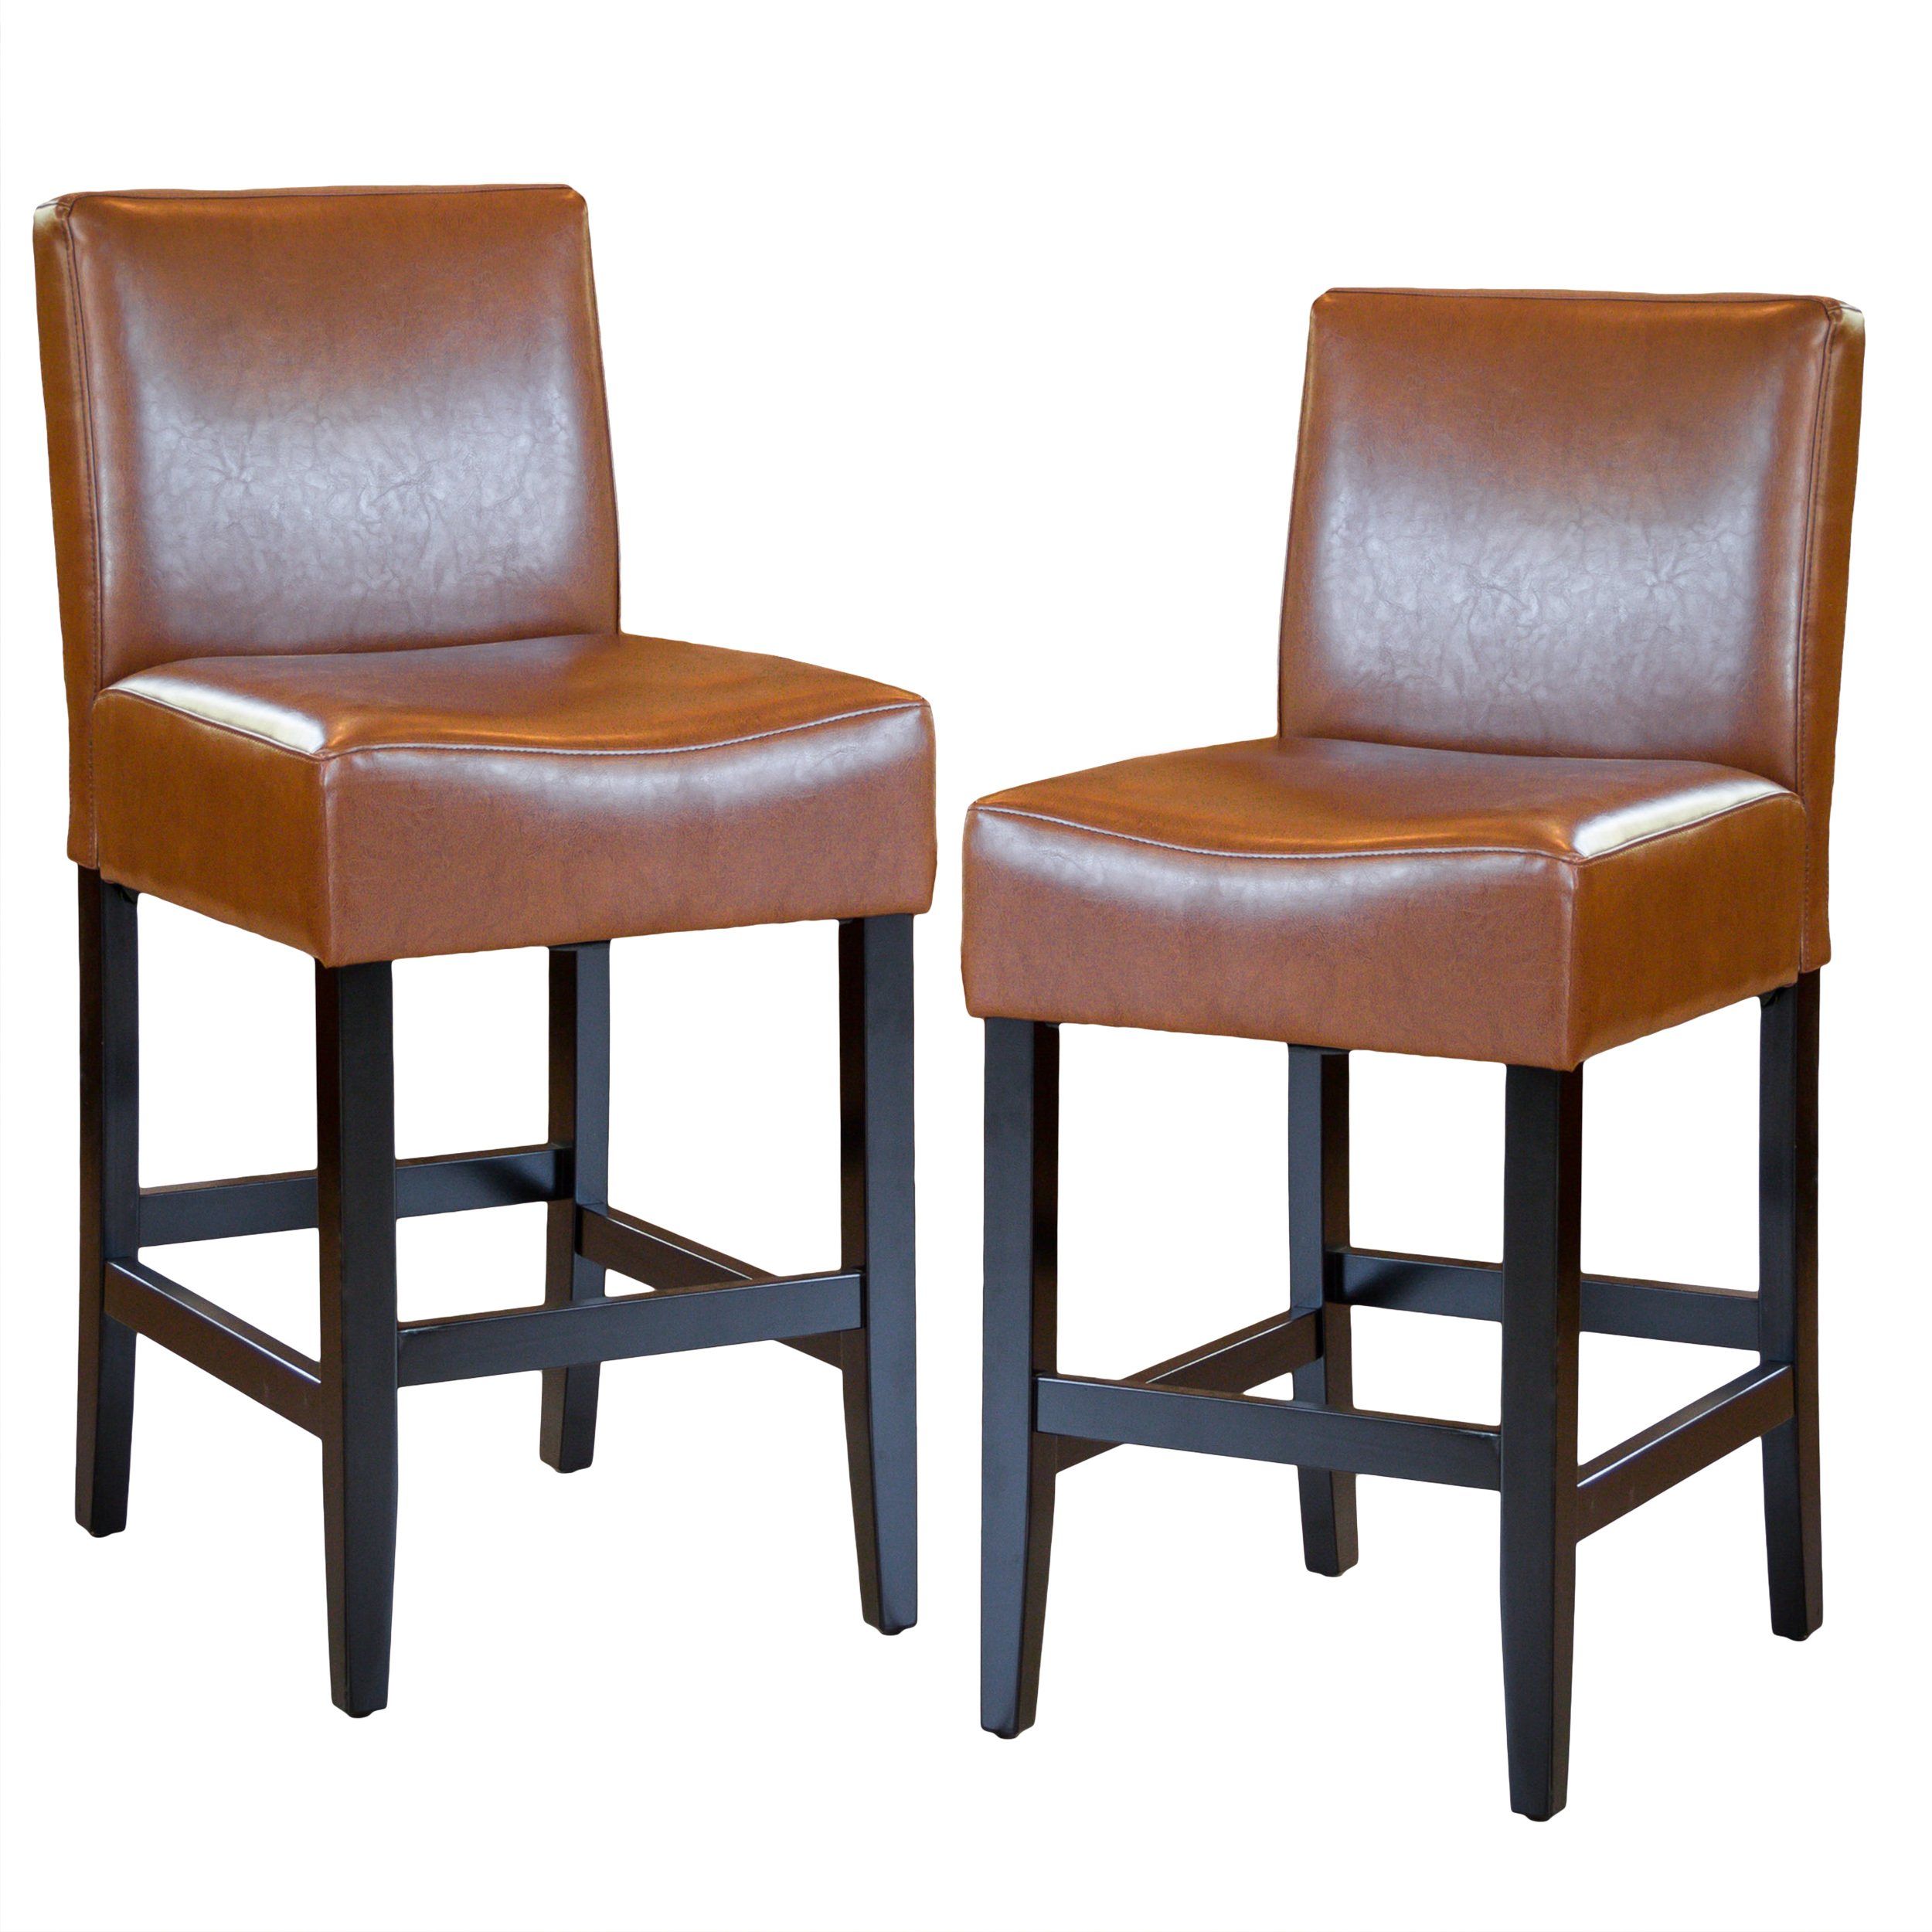 "Skyland Hazelnut Bonded Leather 26"" Counter Stools (Set of 2)"